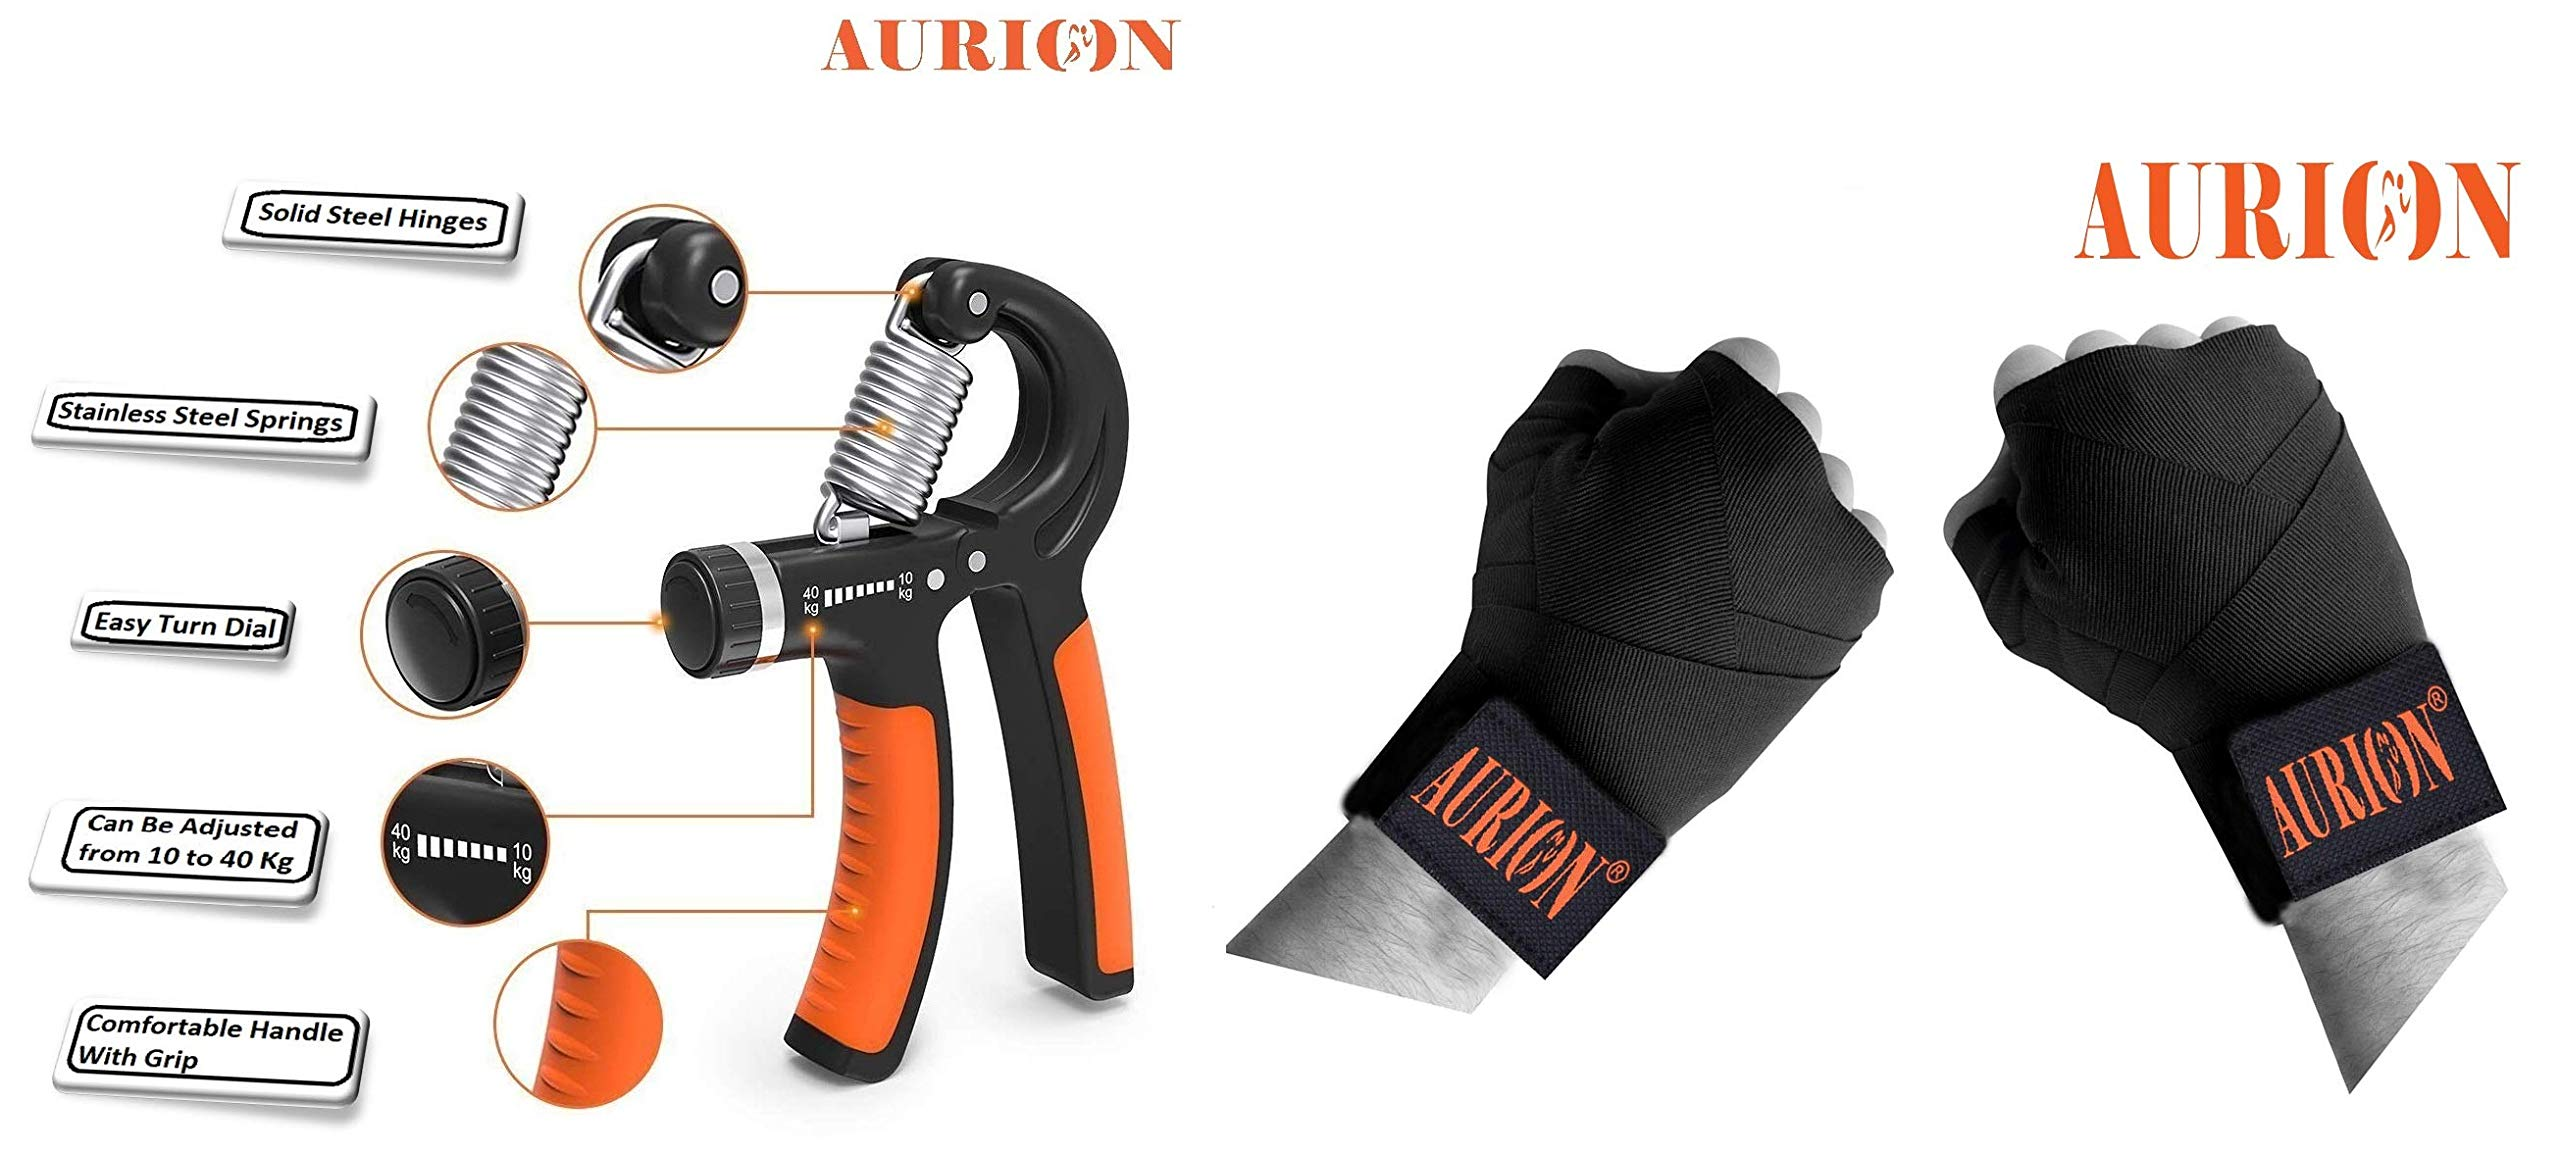 Amazon price history for AURION HANDGRIP1040 Adjustable Hand Grip, Multicolor & 3434 Canvas Boxing Hand Wraps, 108-inch (Black/Red/Blue) Combo